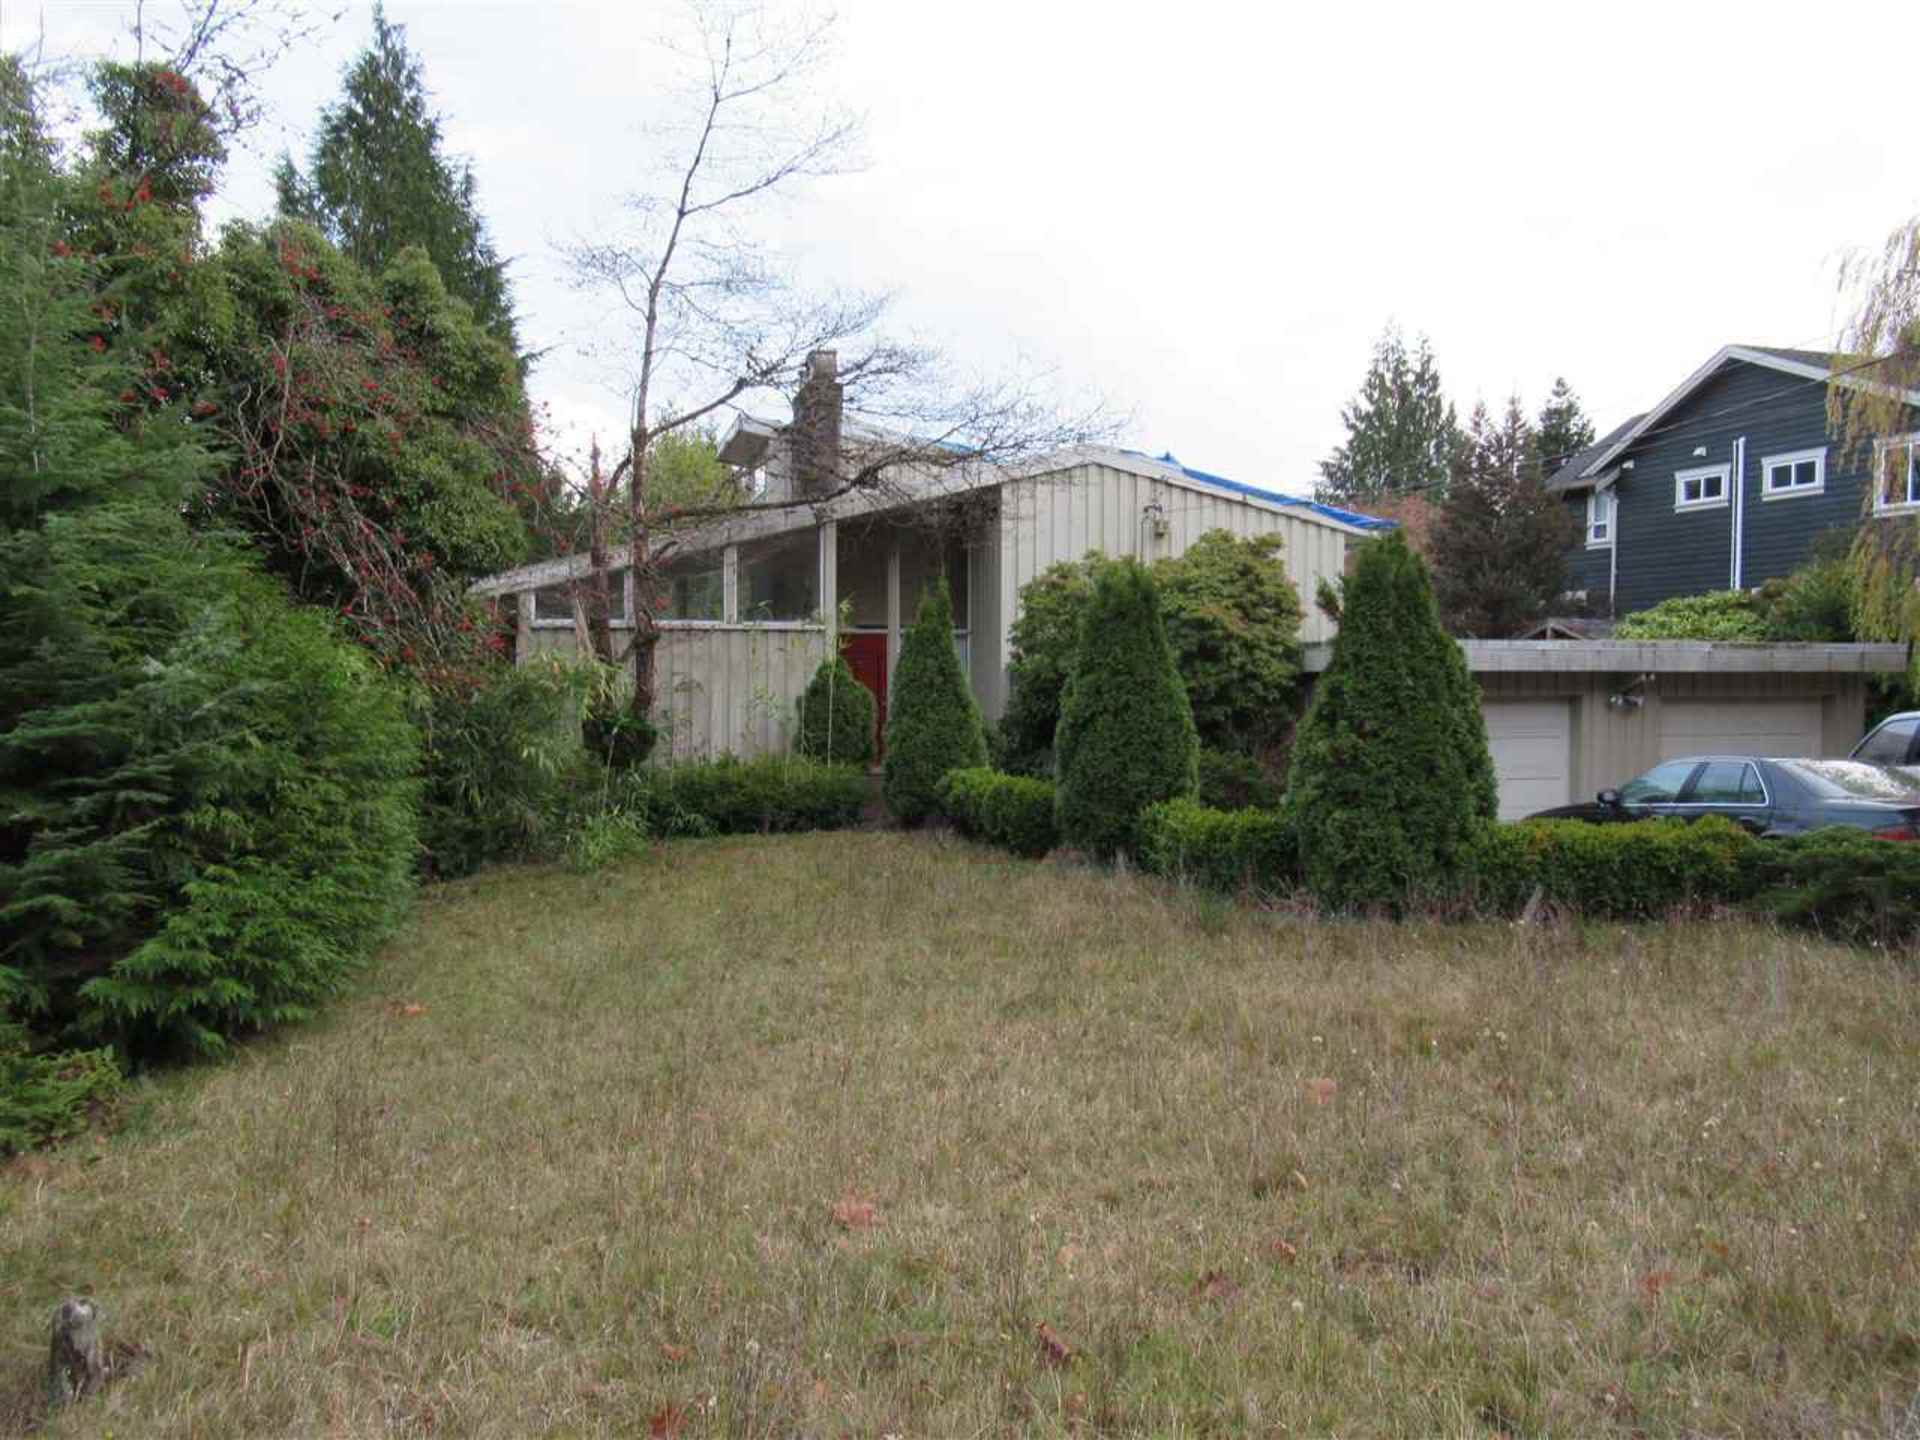 72 Glenmore Drive, Glenmore, West Vancouver